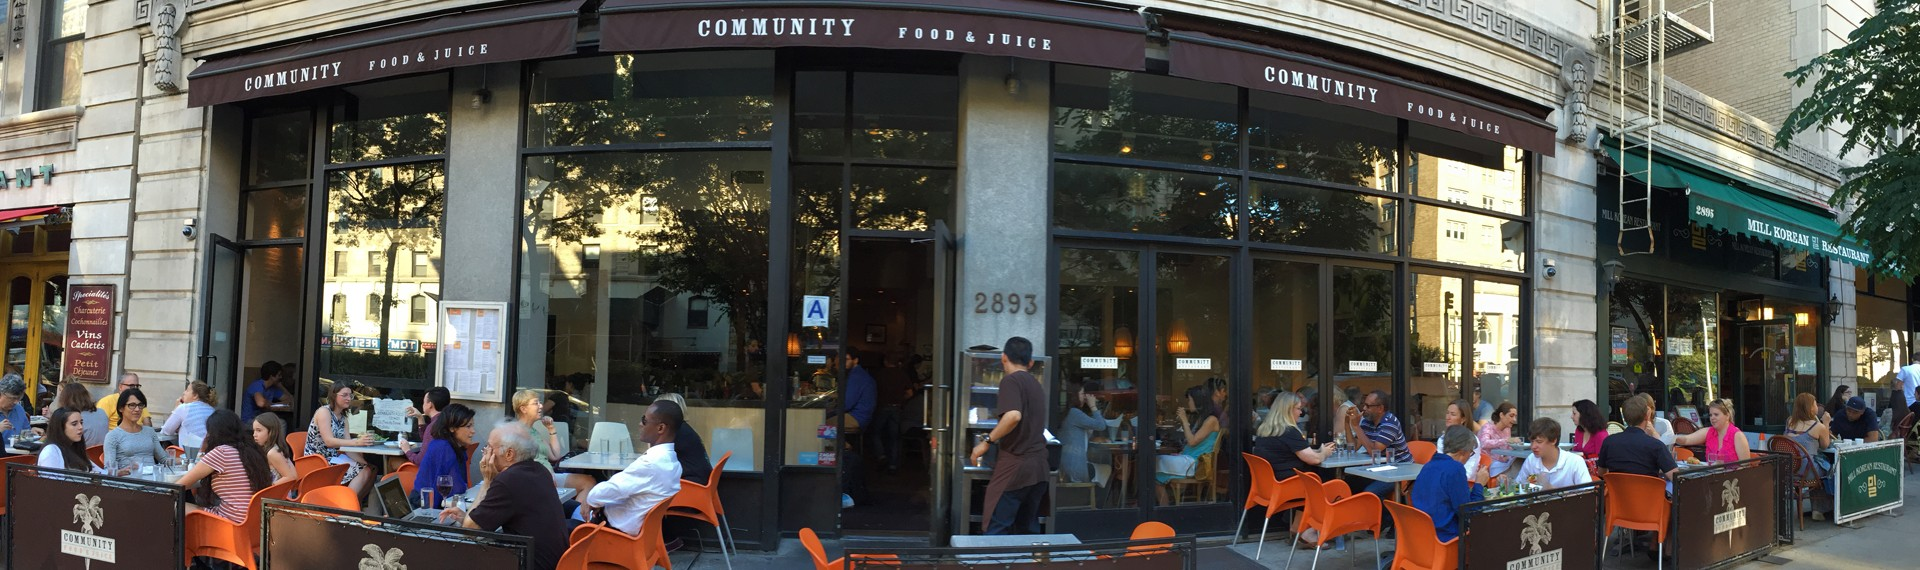 Patrons sitting outside at Community Food & Juce